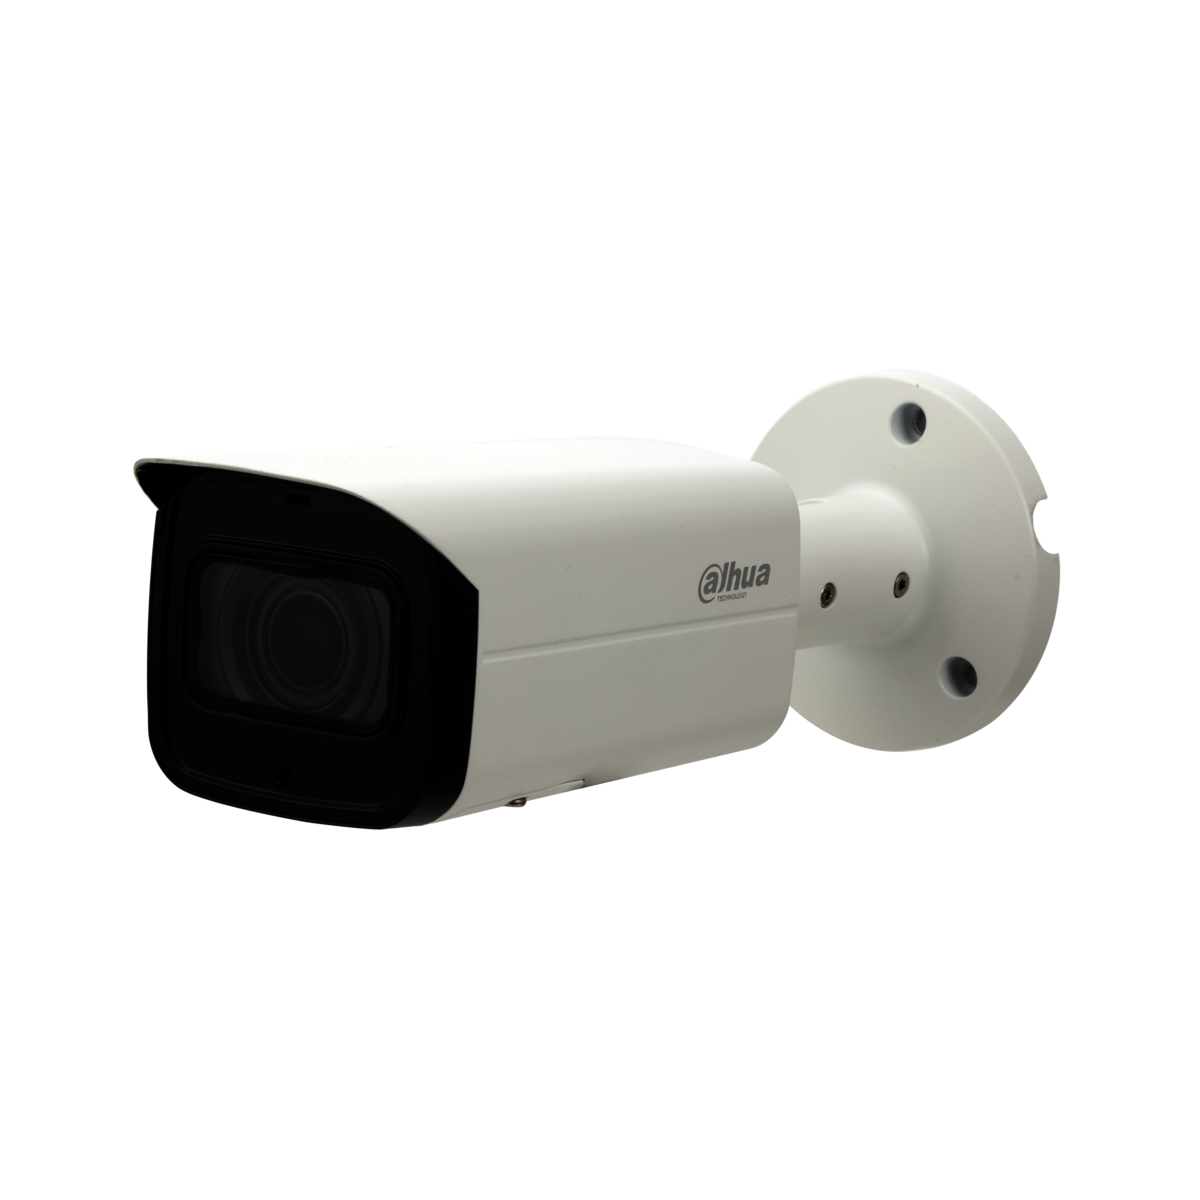 Dahua DH-IPC-HFW2431TP-ZS-27135 4MP WDR IR Bullet Network Camera